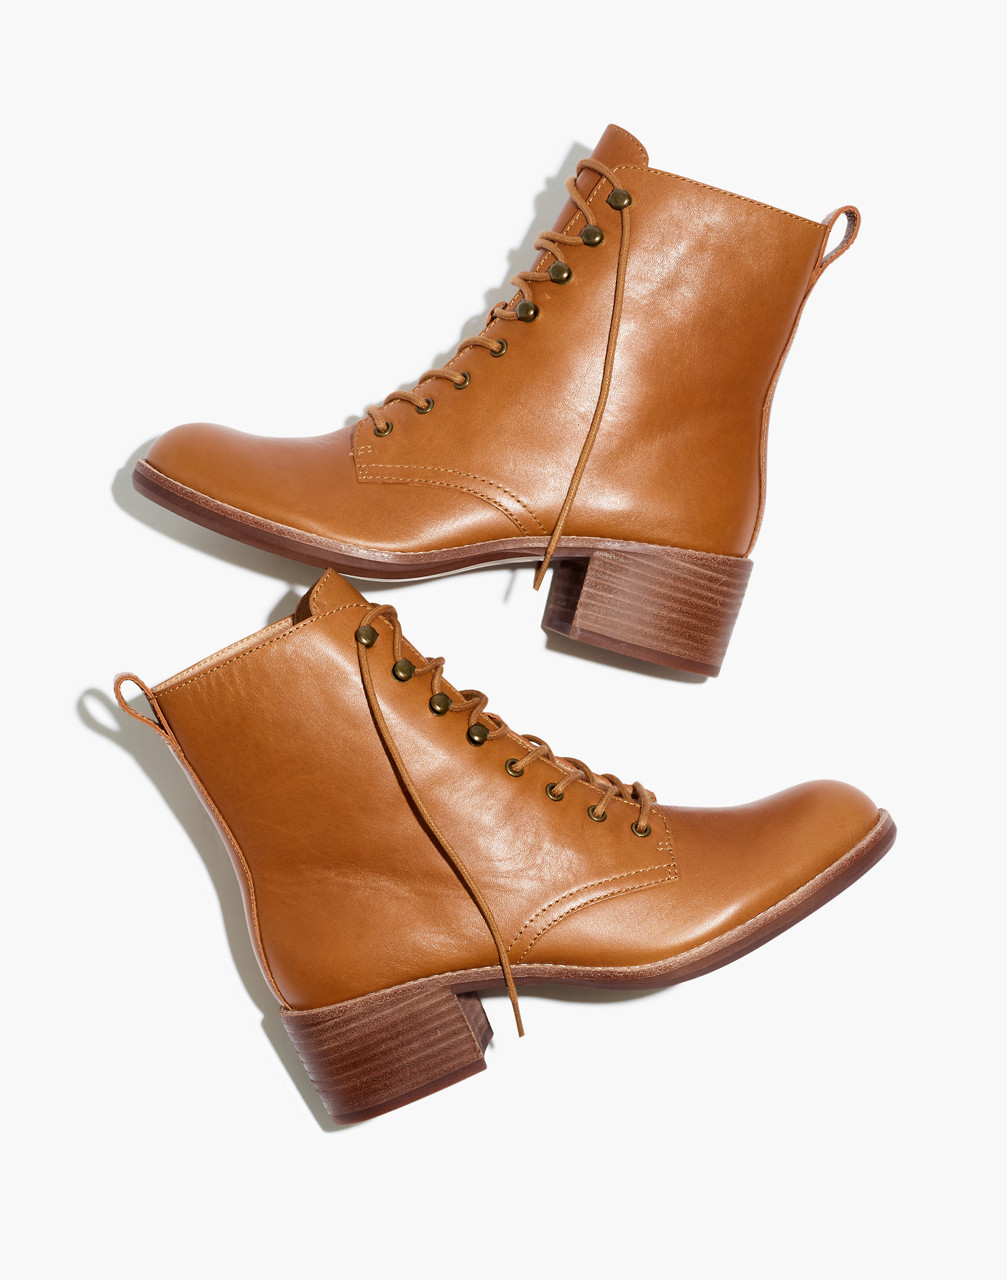 Vintage Boots, Retro Boots The Patti Lace-Up Boot $228.00 AT vintagedancer.com